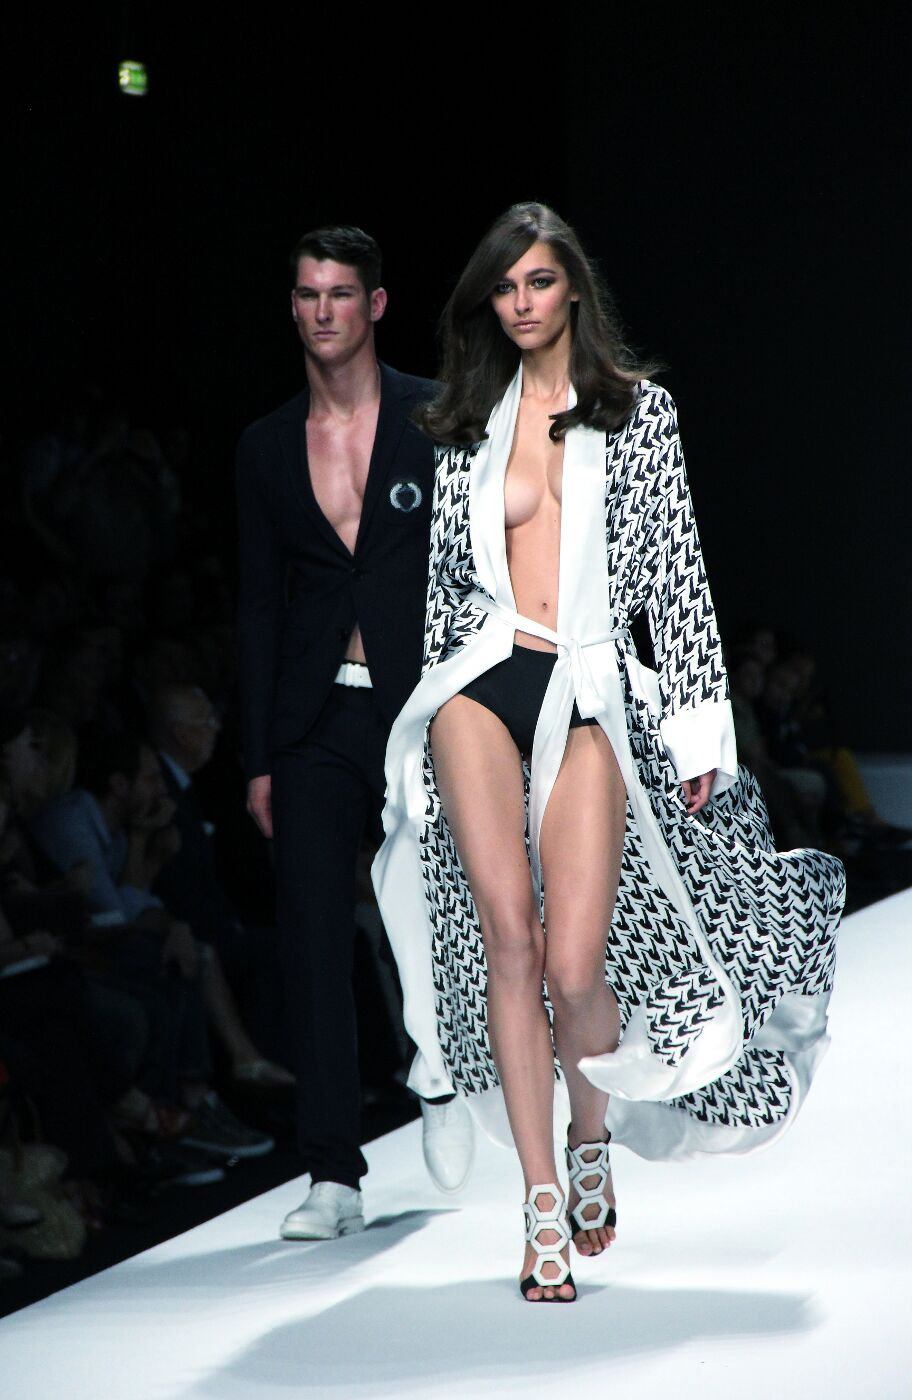 dirk-bikkembergs-sport-couture-ss-spring-summer-2012-milano-fashion-week-dirk-bikkembergs-sport-couture